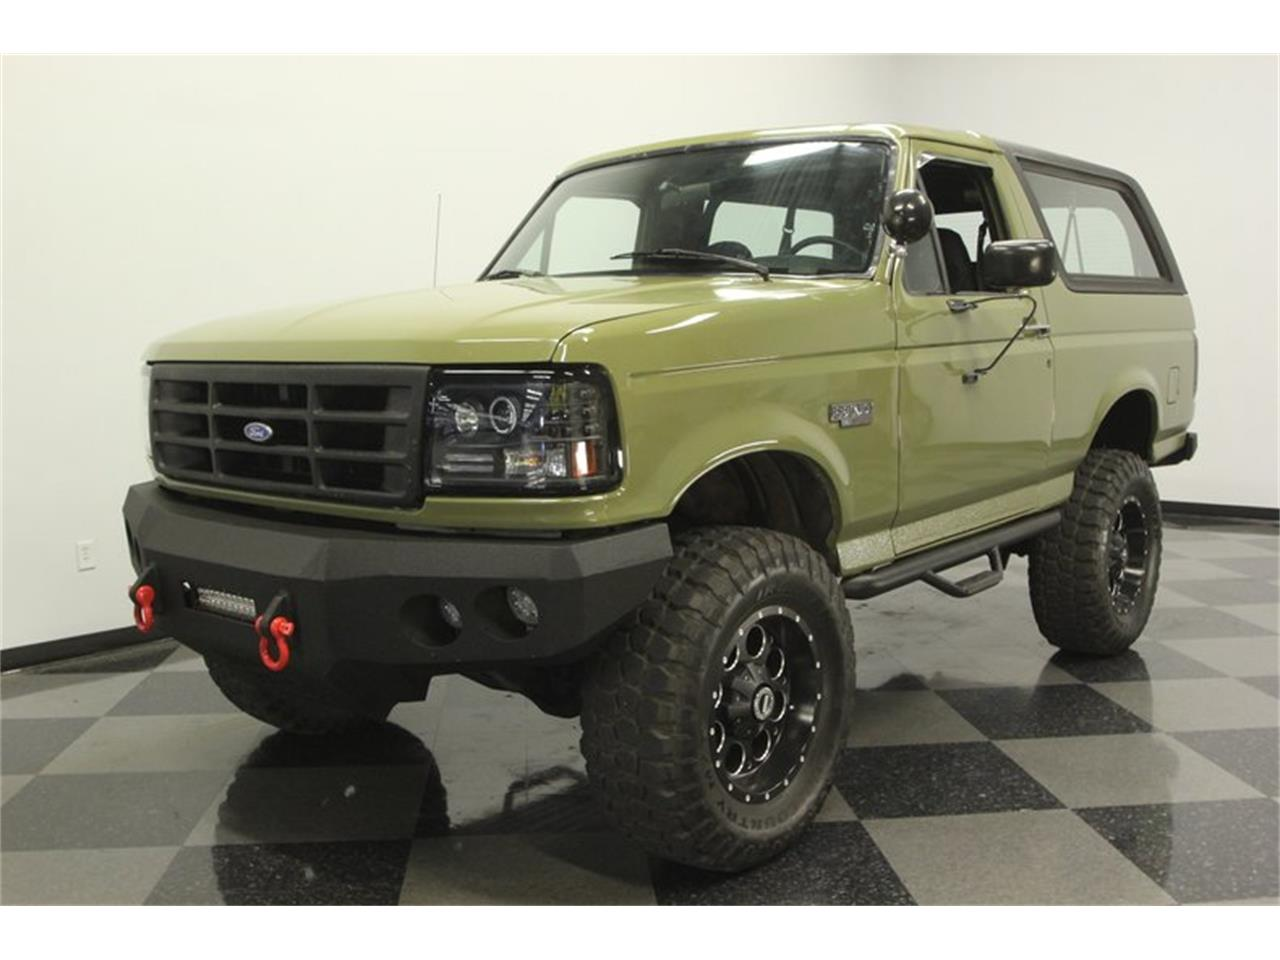 1996 Ford Bronco for sale in Lutz, FL – photo 4